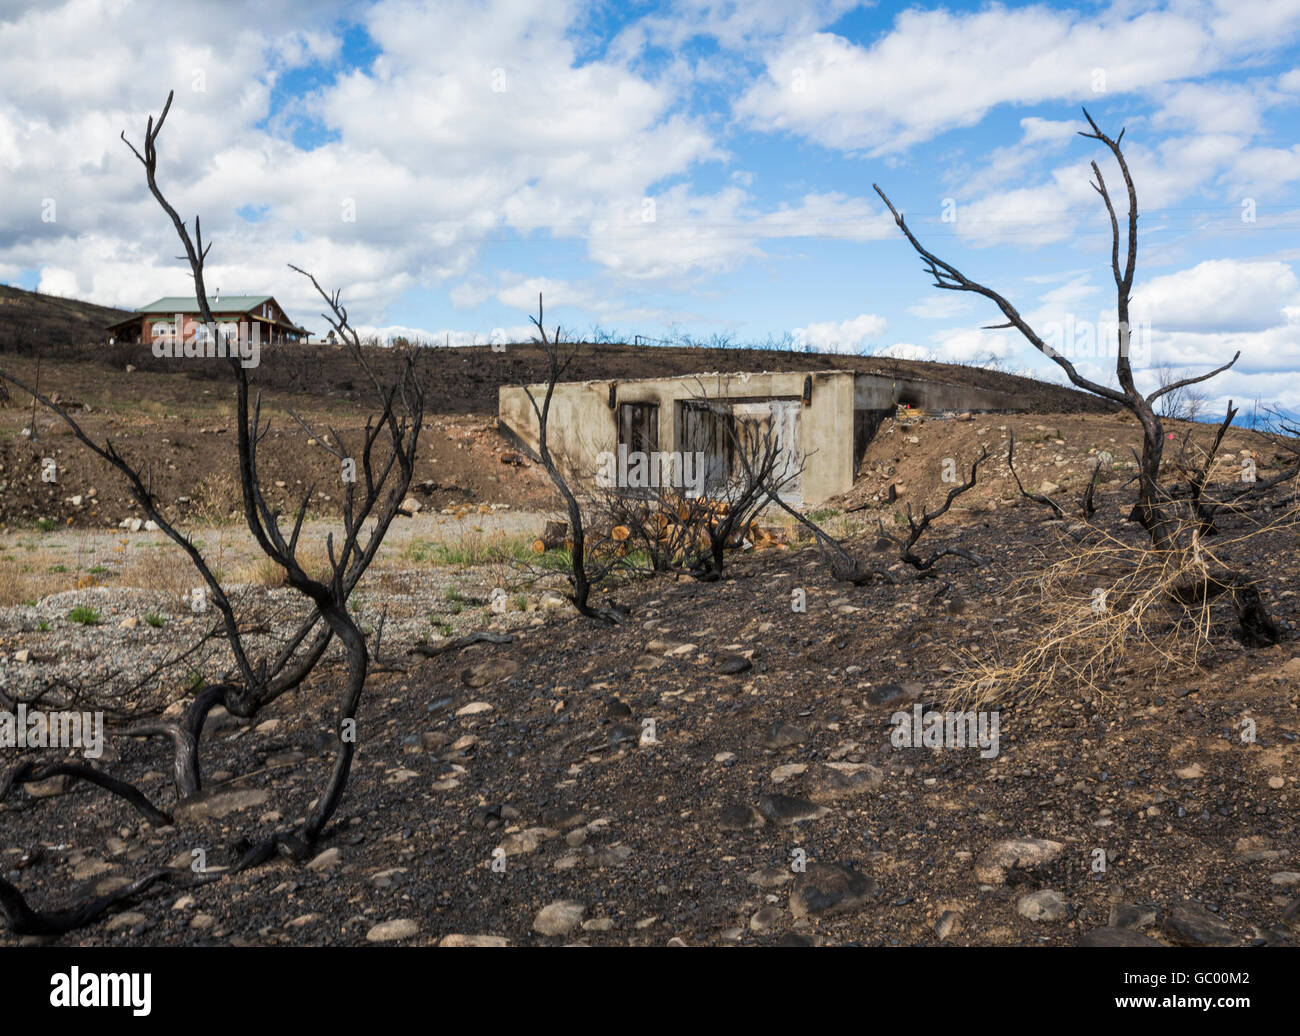 Remains of a burned house home in charred rural landscape after a fire. Destruction caused by natural disaster wildfire. - Stock Image